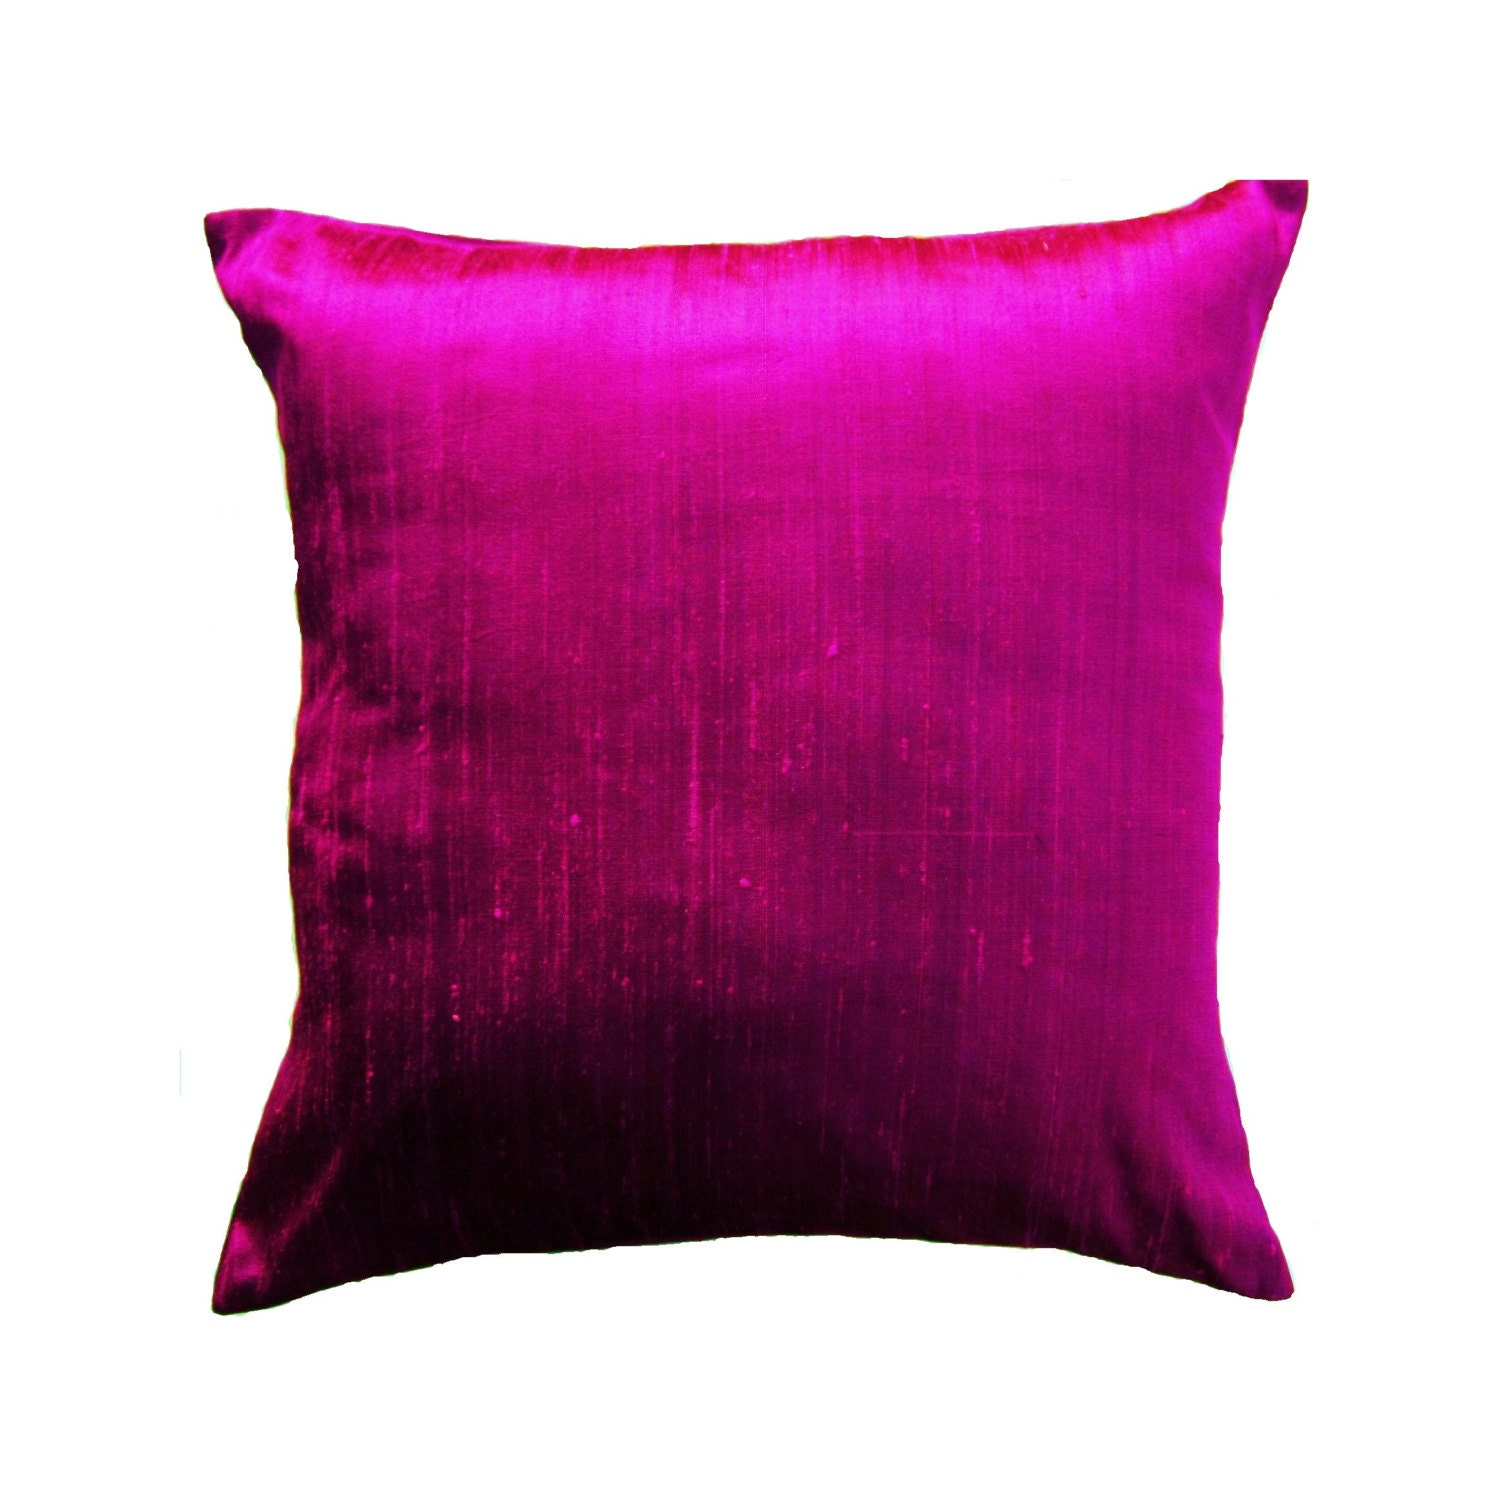 Magenta Pillow Cover Silk Purple Pink Throw Pillow Cover